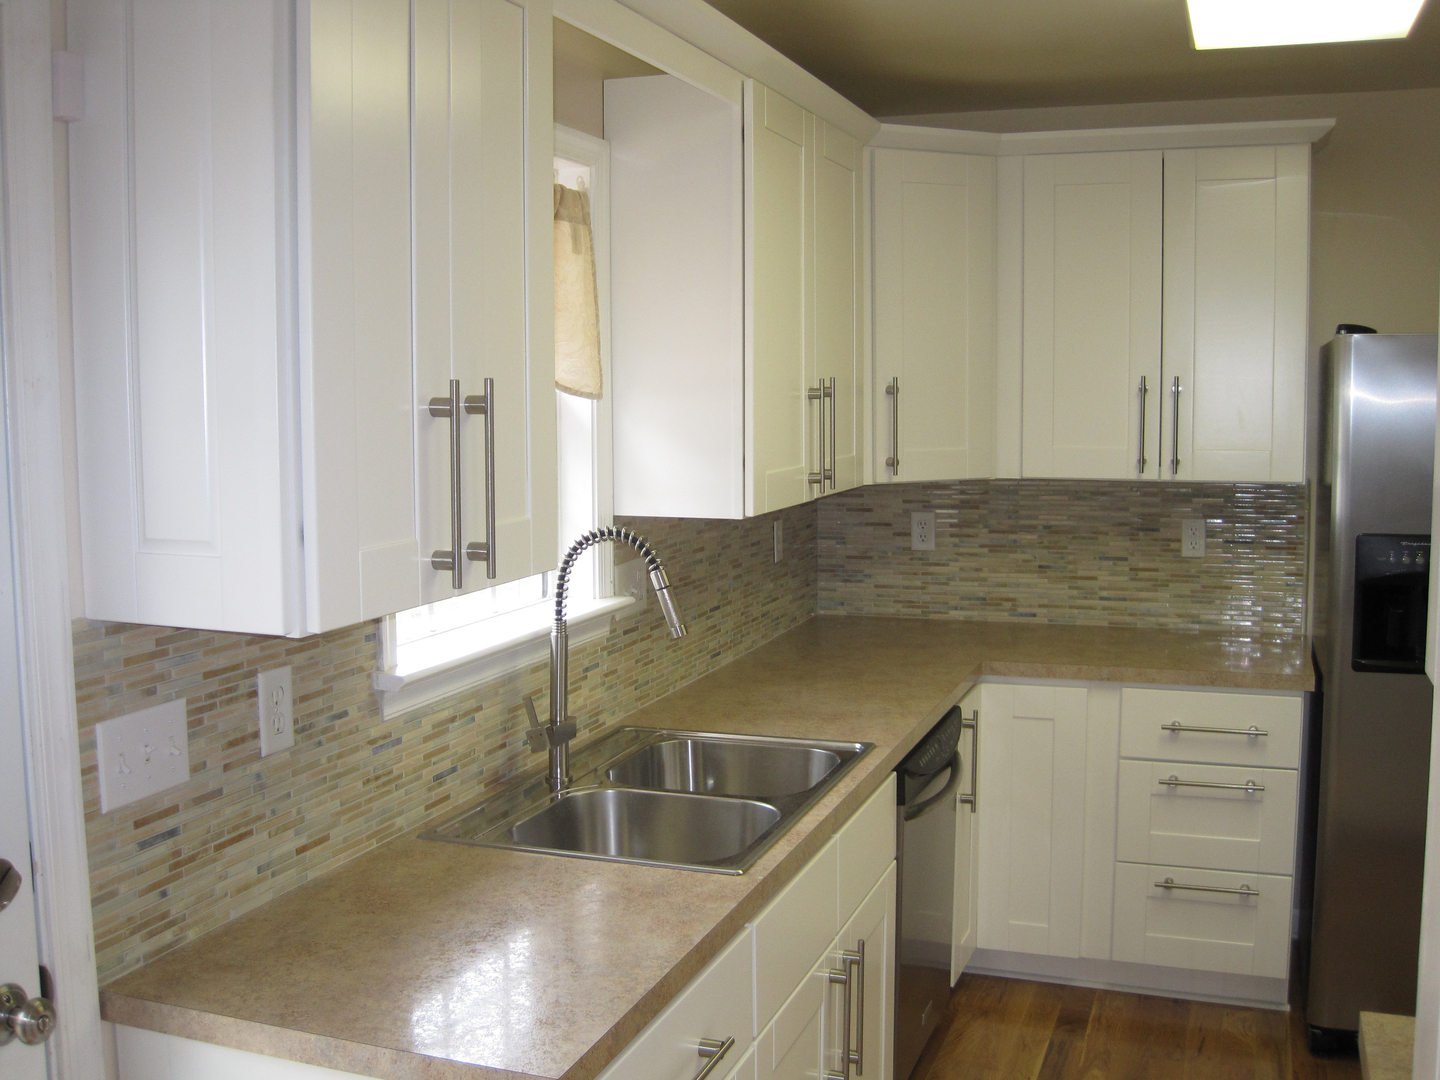 home remodeling remodeling kitchen ATI home solutions